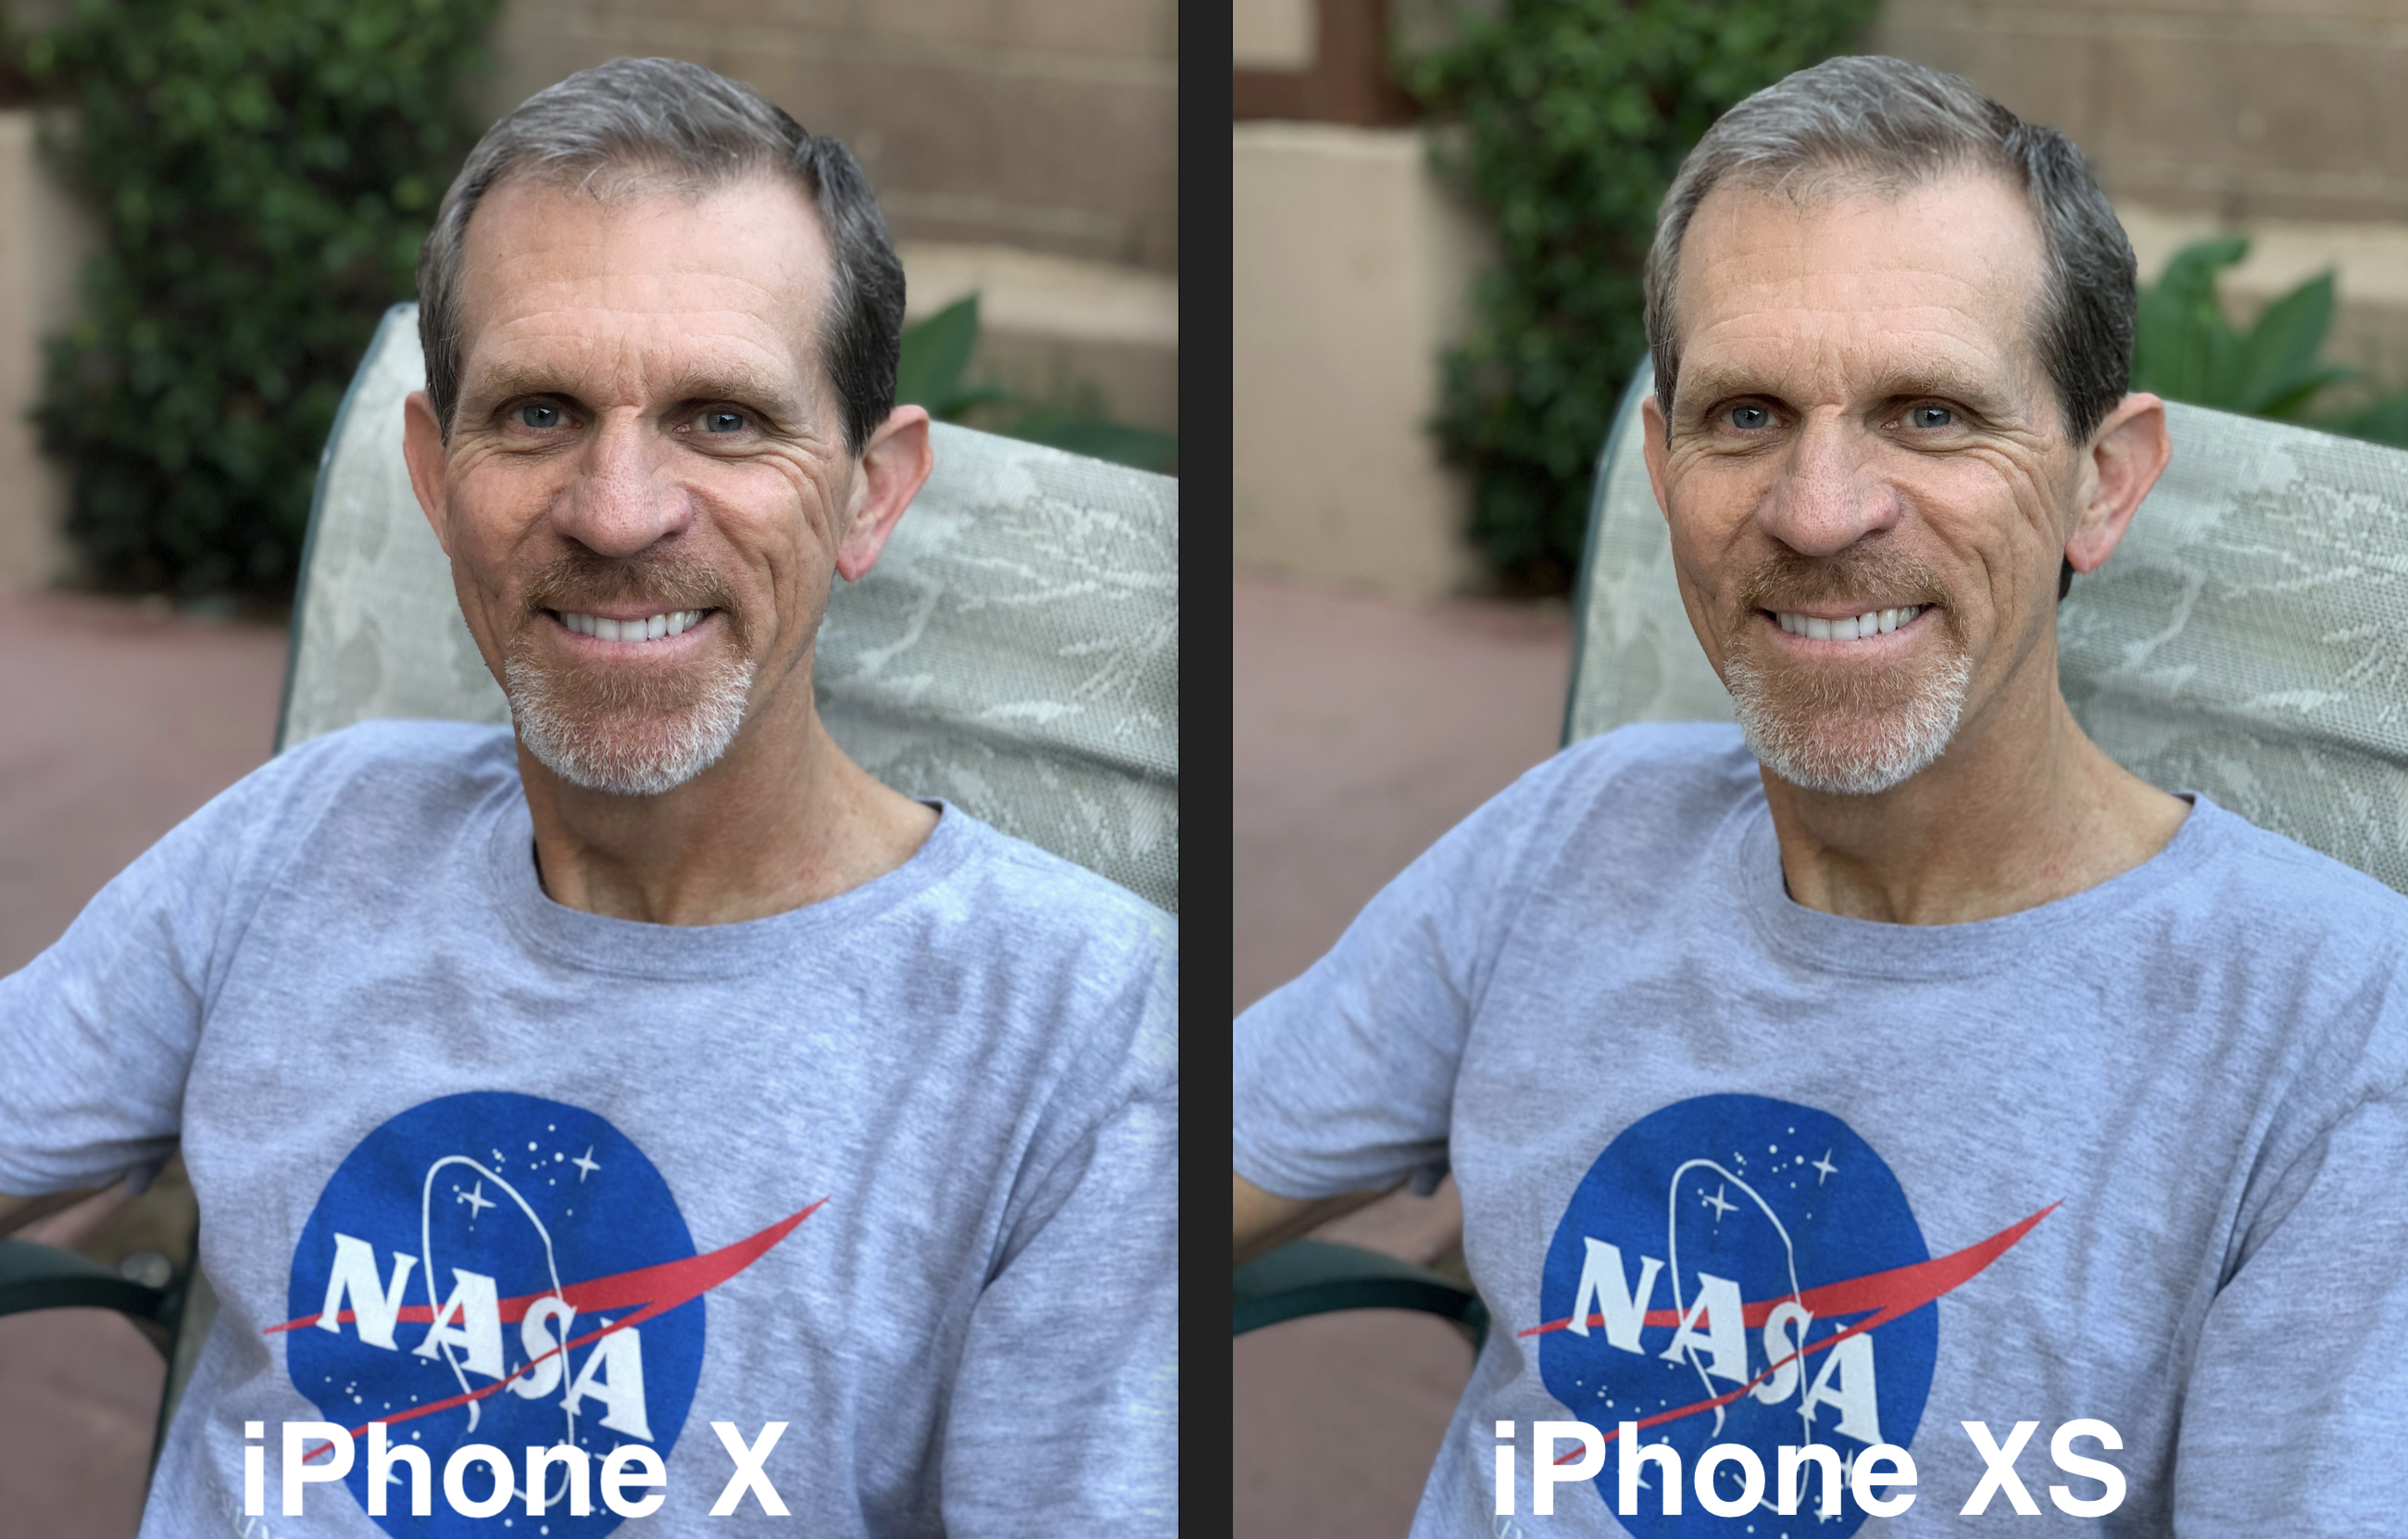 IPhone X vs XS Steve portrait 2600 72